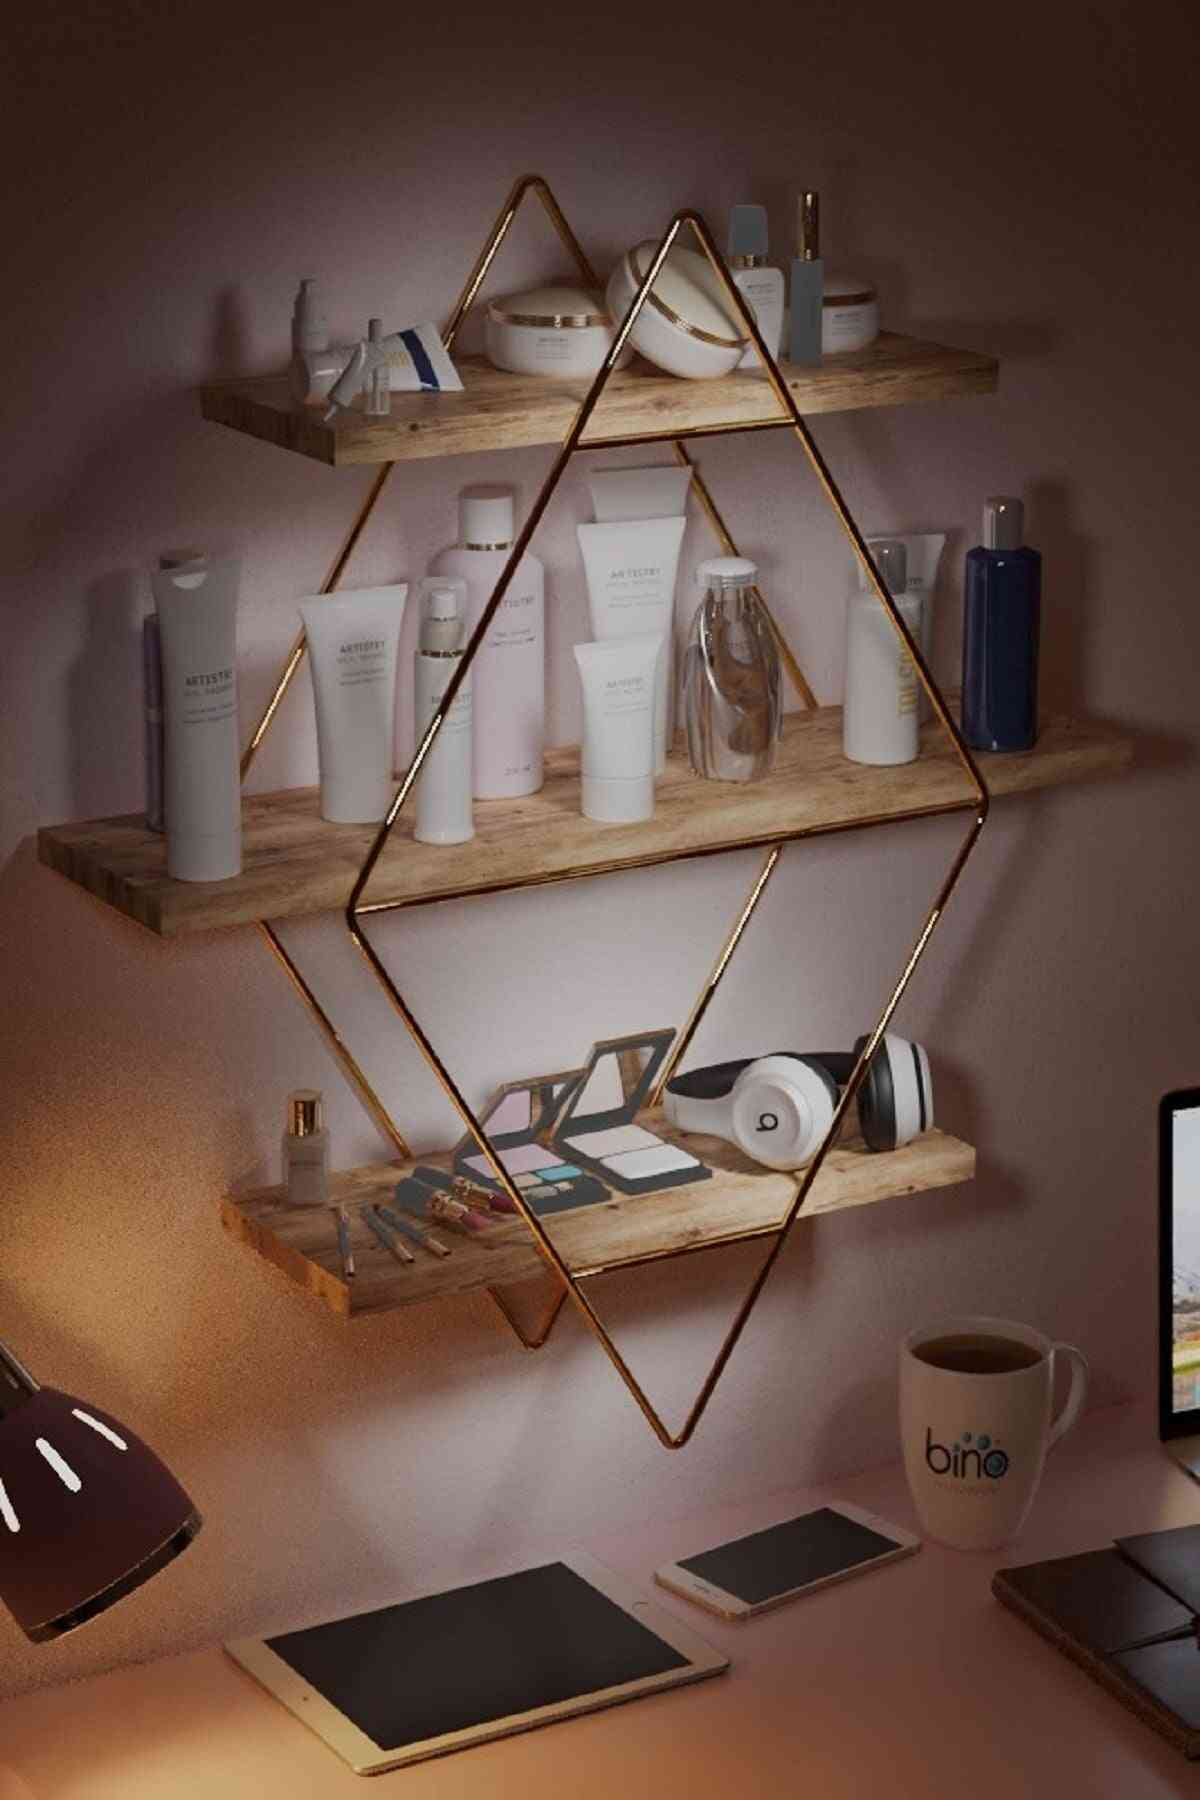 Large Size Prism Solid Wall Shelf Kitchen Bathroom Bookcase Mounted 3 Layers Wood Decoration Organizer Accessories Supplies